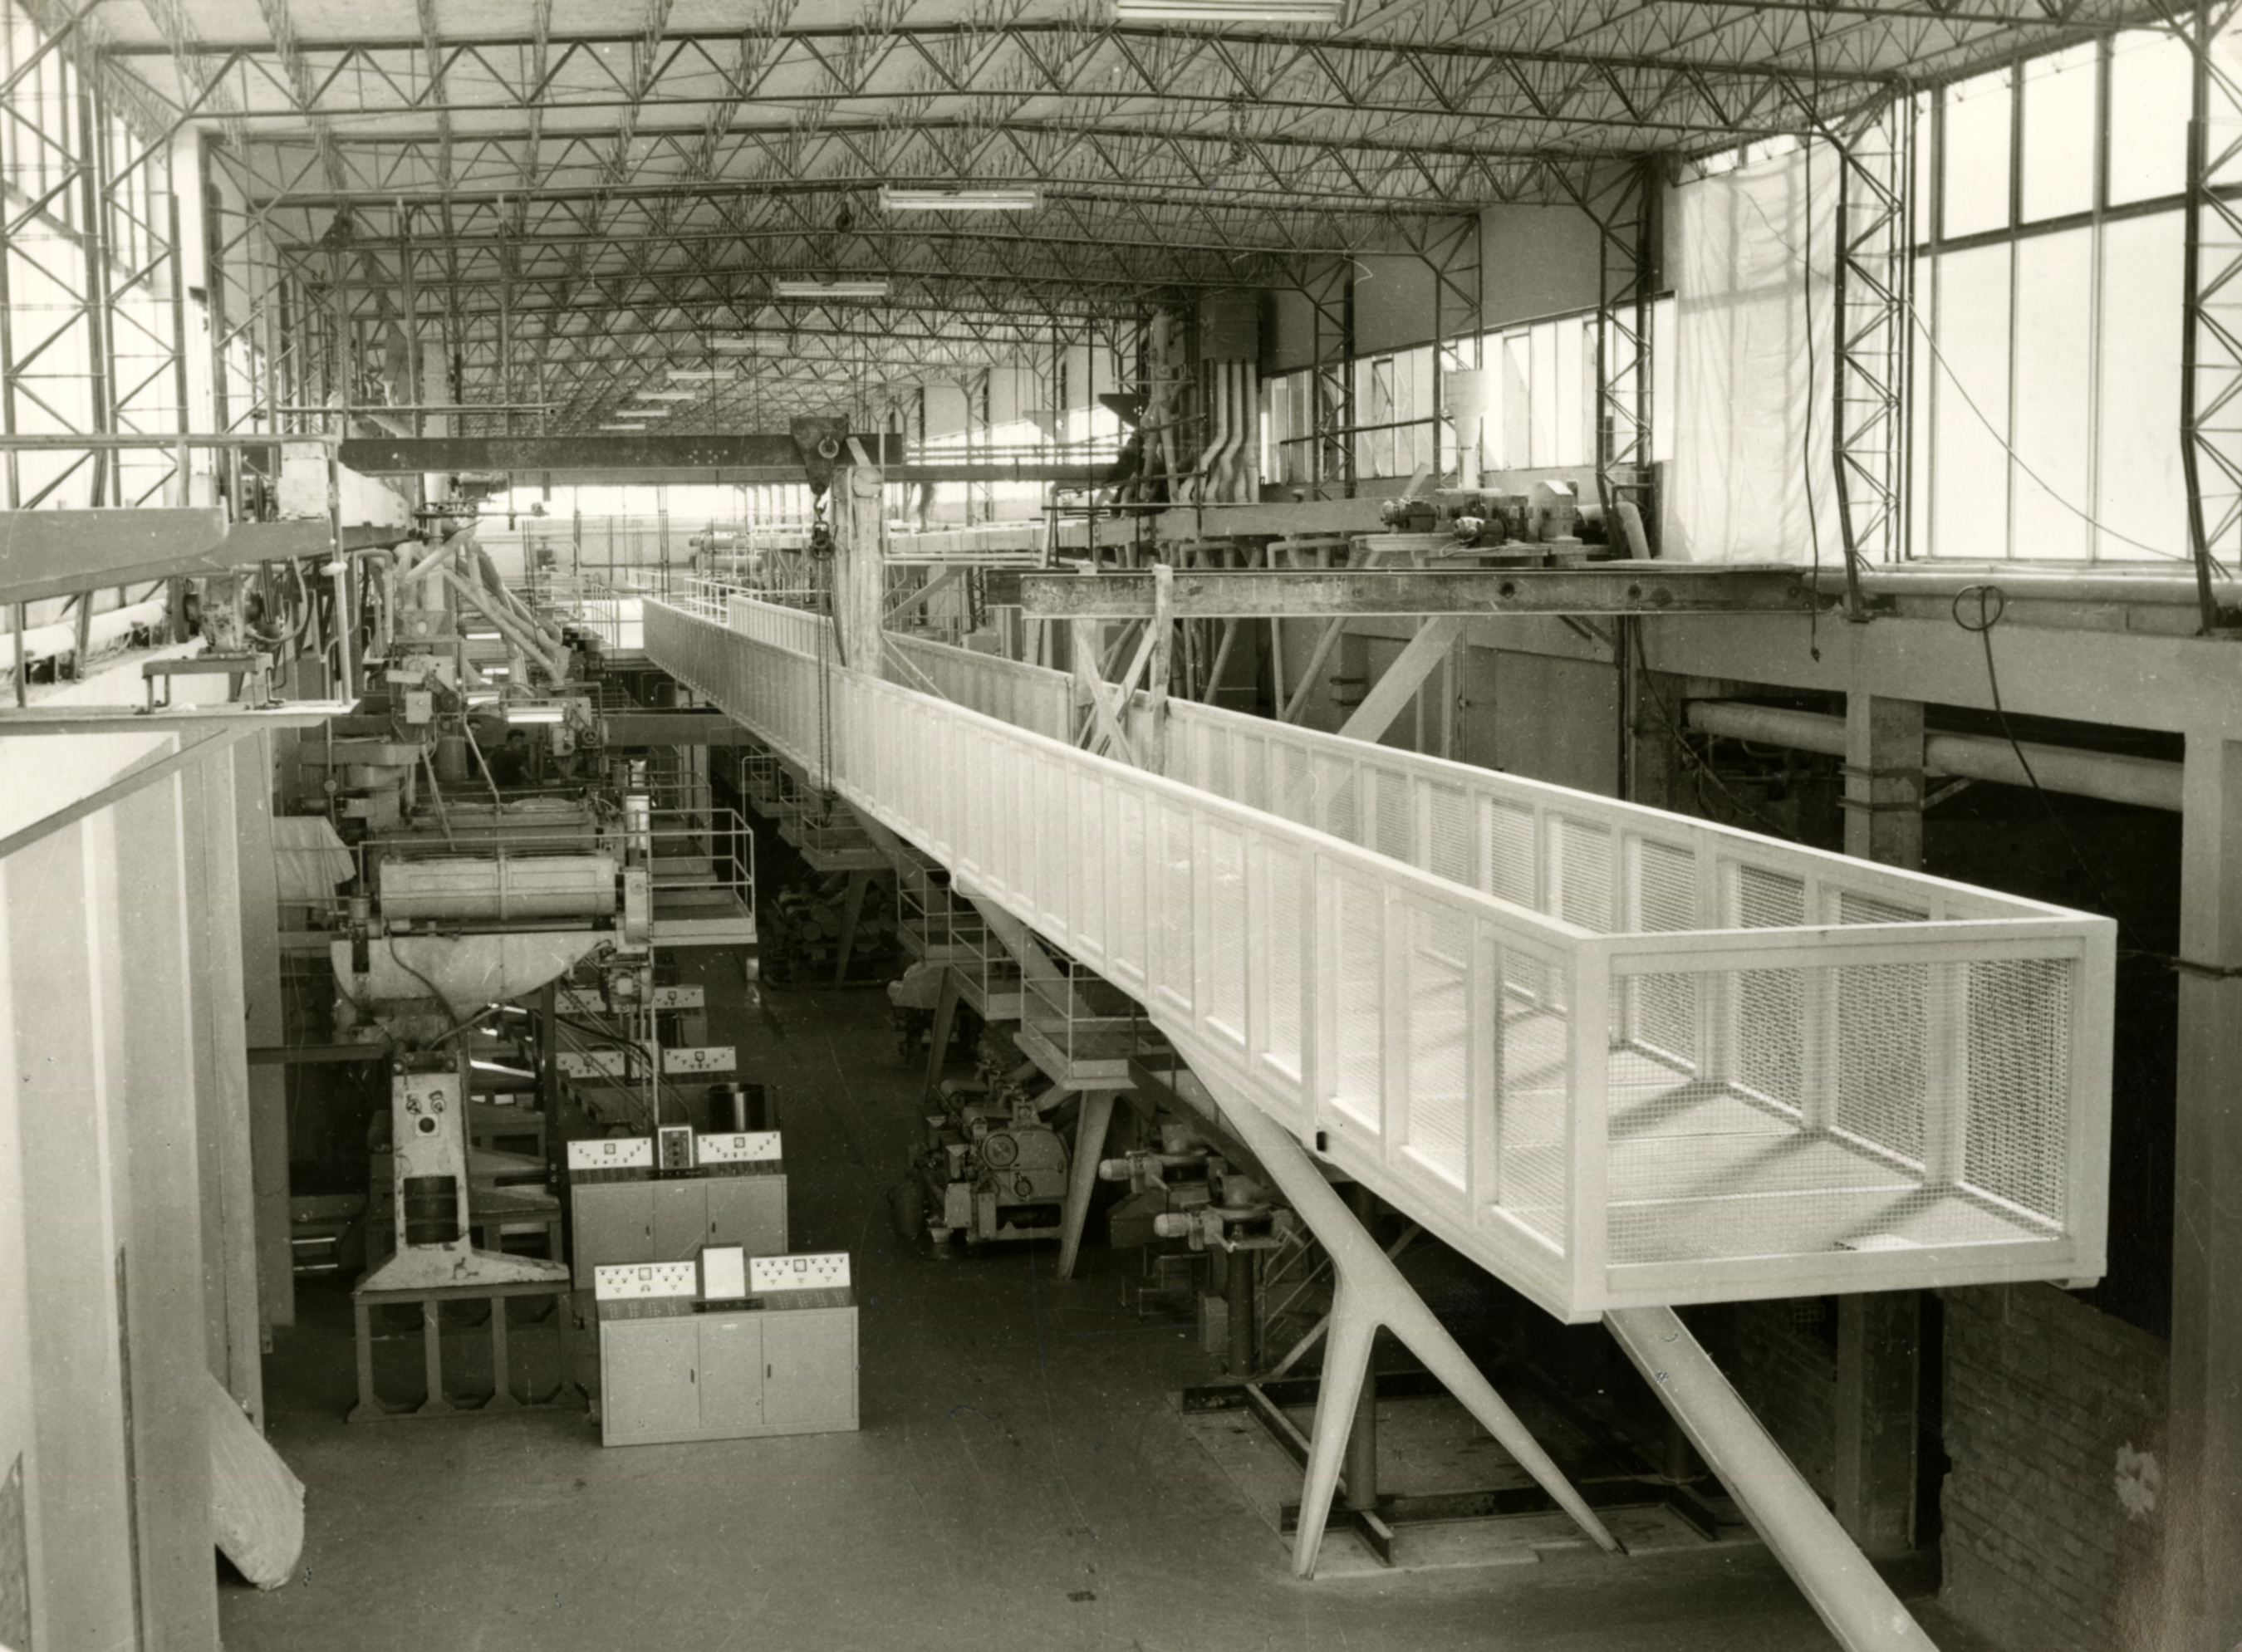 An inner view of the second floor of the Barilla plant at Barriera Vittorio Emanuele with the continuous presses [ASB, O, Stabilimenti, Photo by Carra].